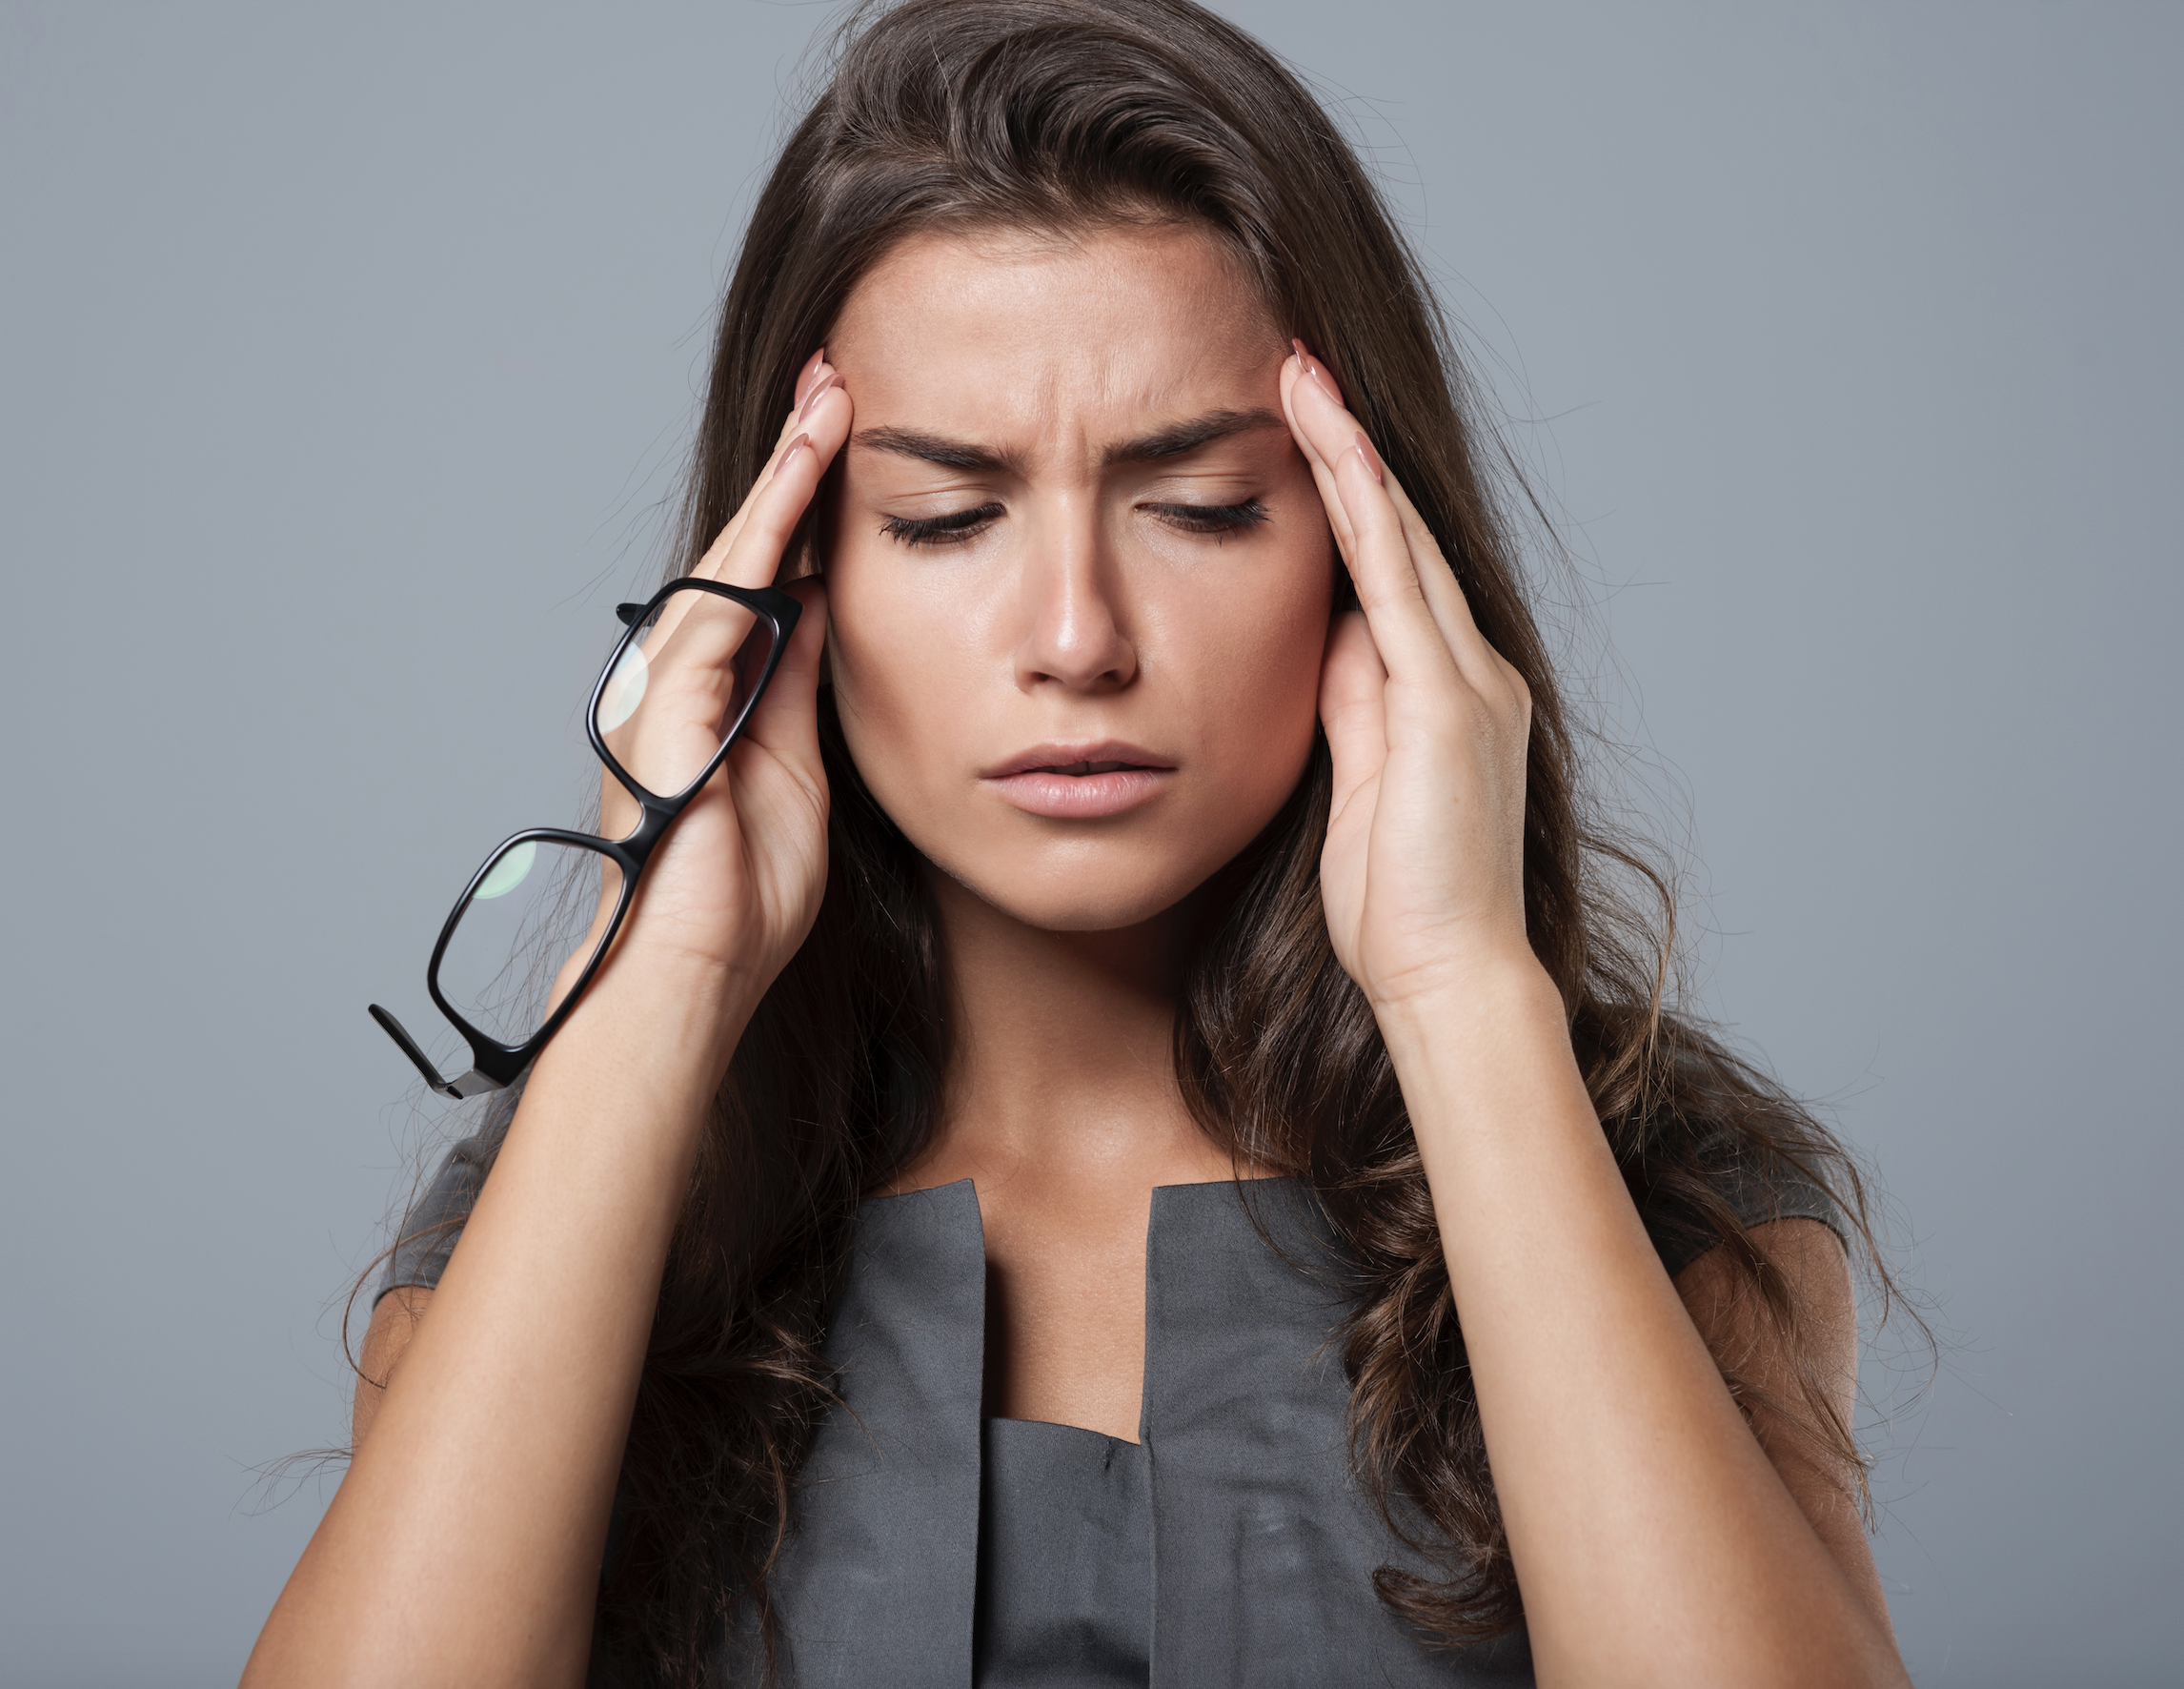 Headaches - symptoms, diagnosis, treatment